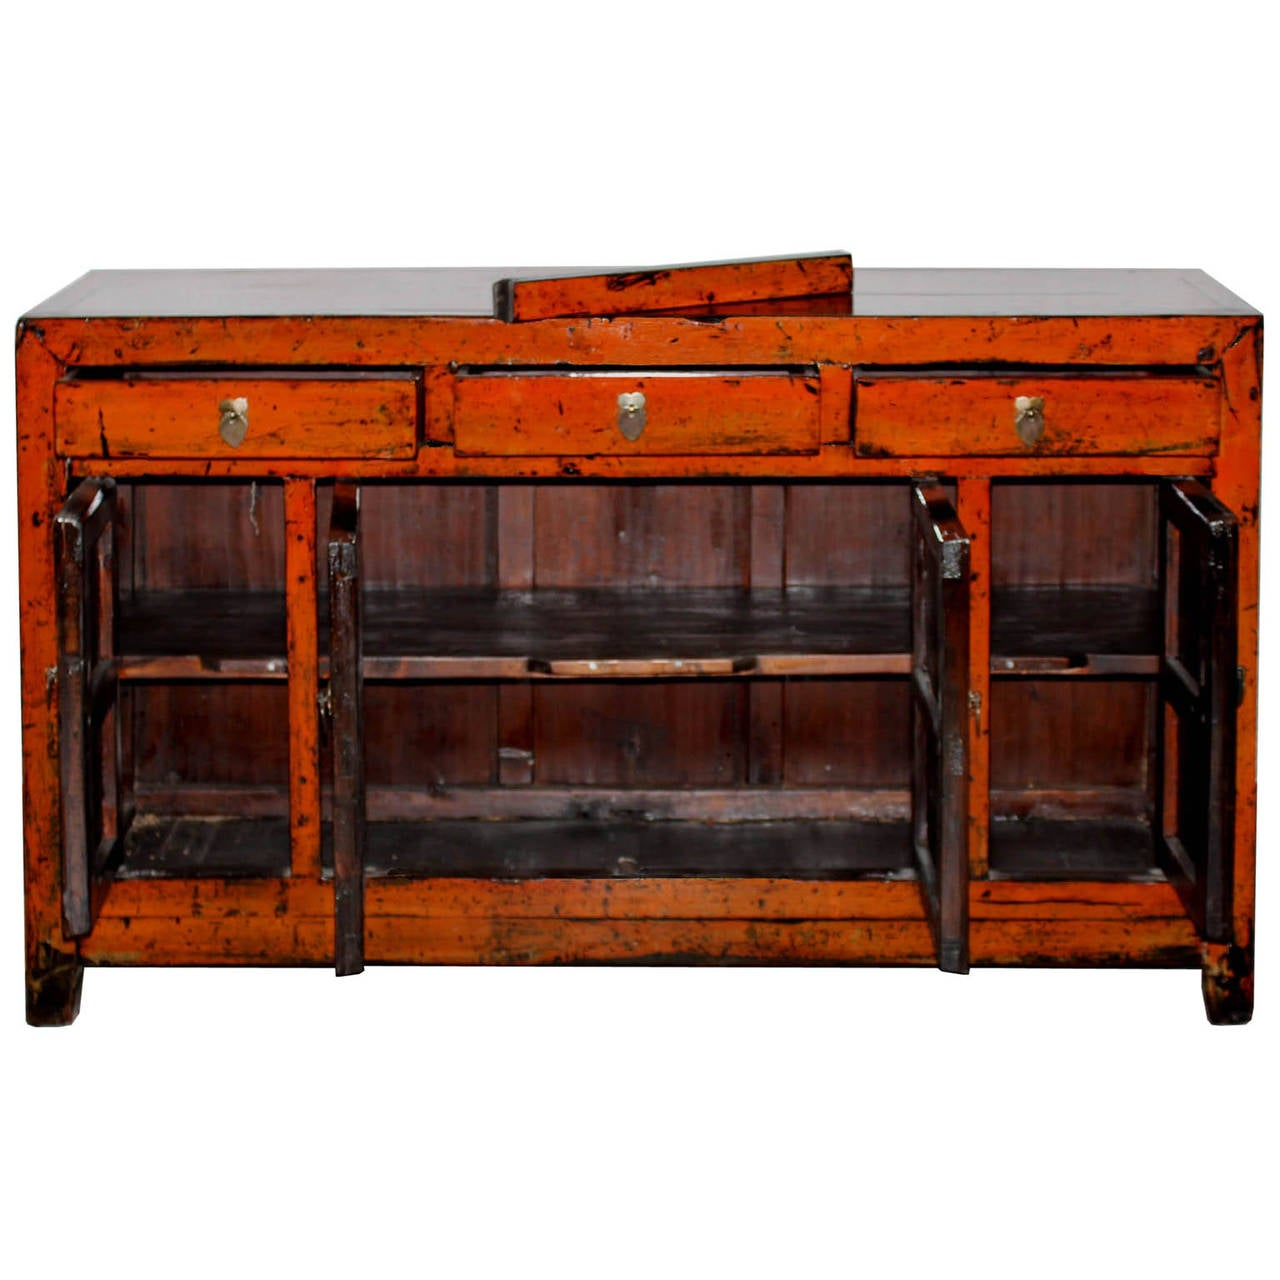 Orange dongbei buffet at 1stdibs for Sideboard orange